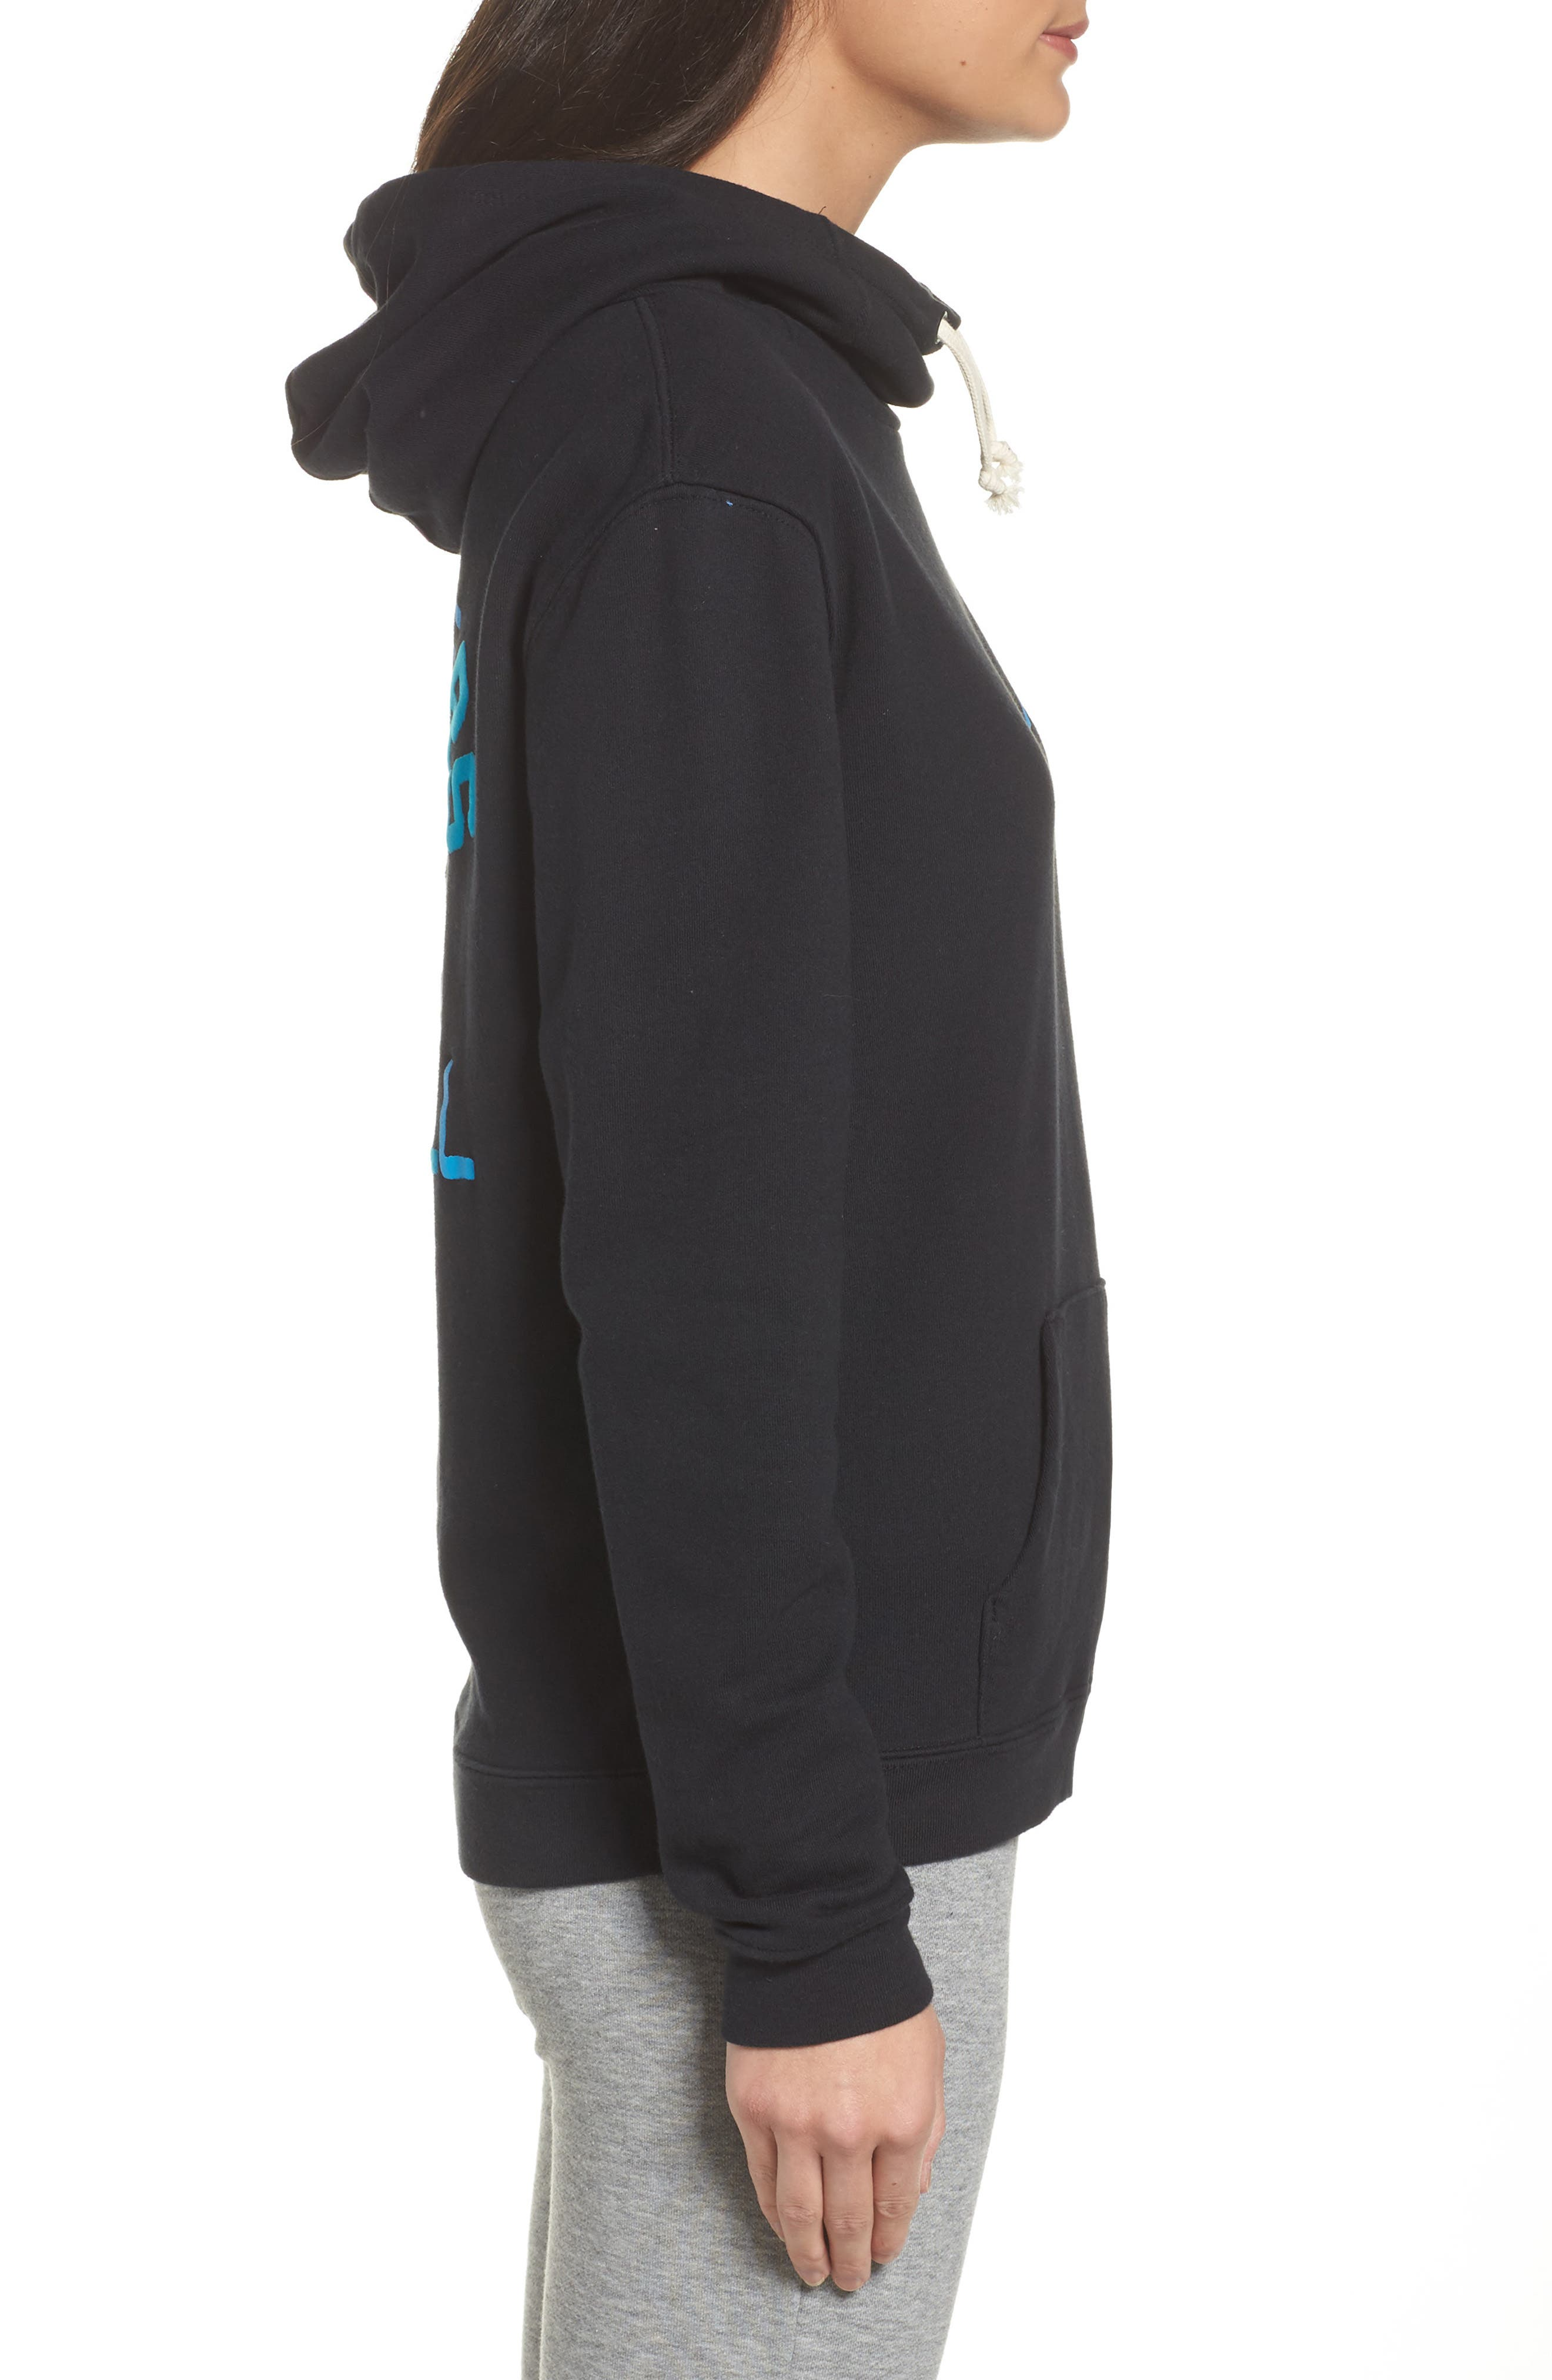 Panthers Sunday Hoodie,                             Alternate thumbnail 3, color,                             001